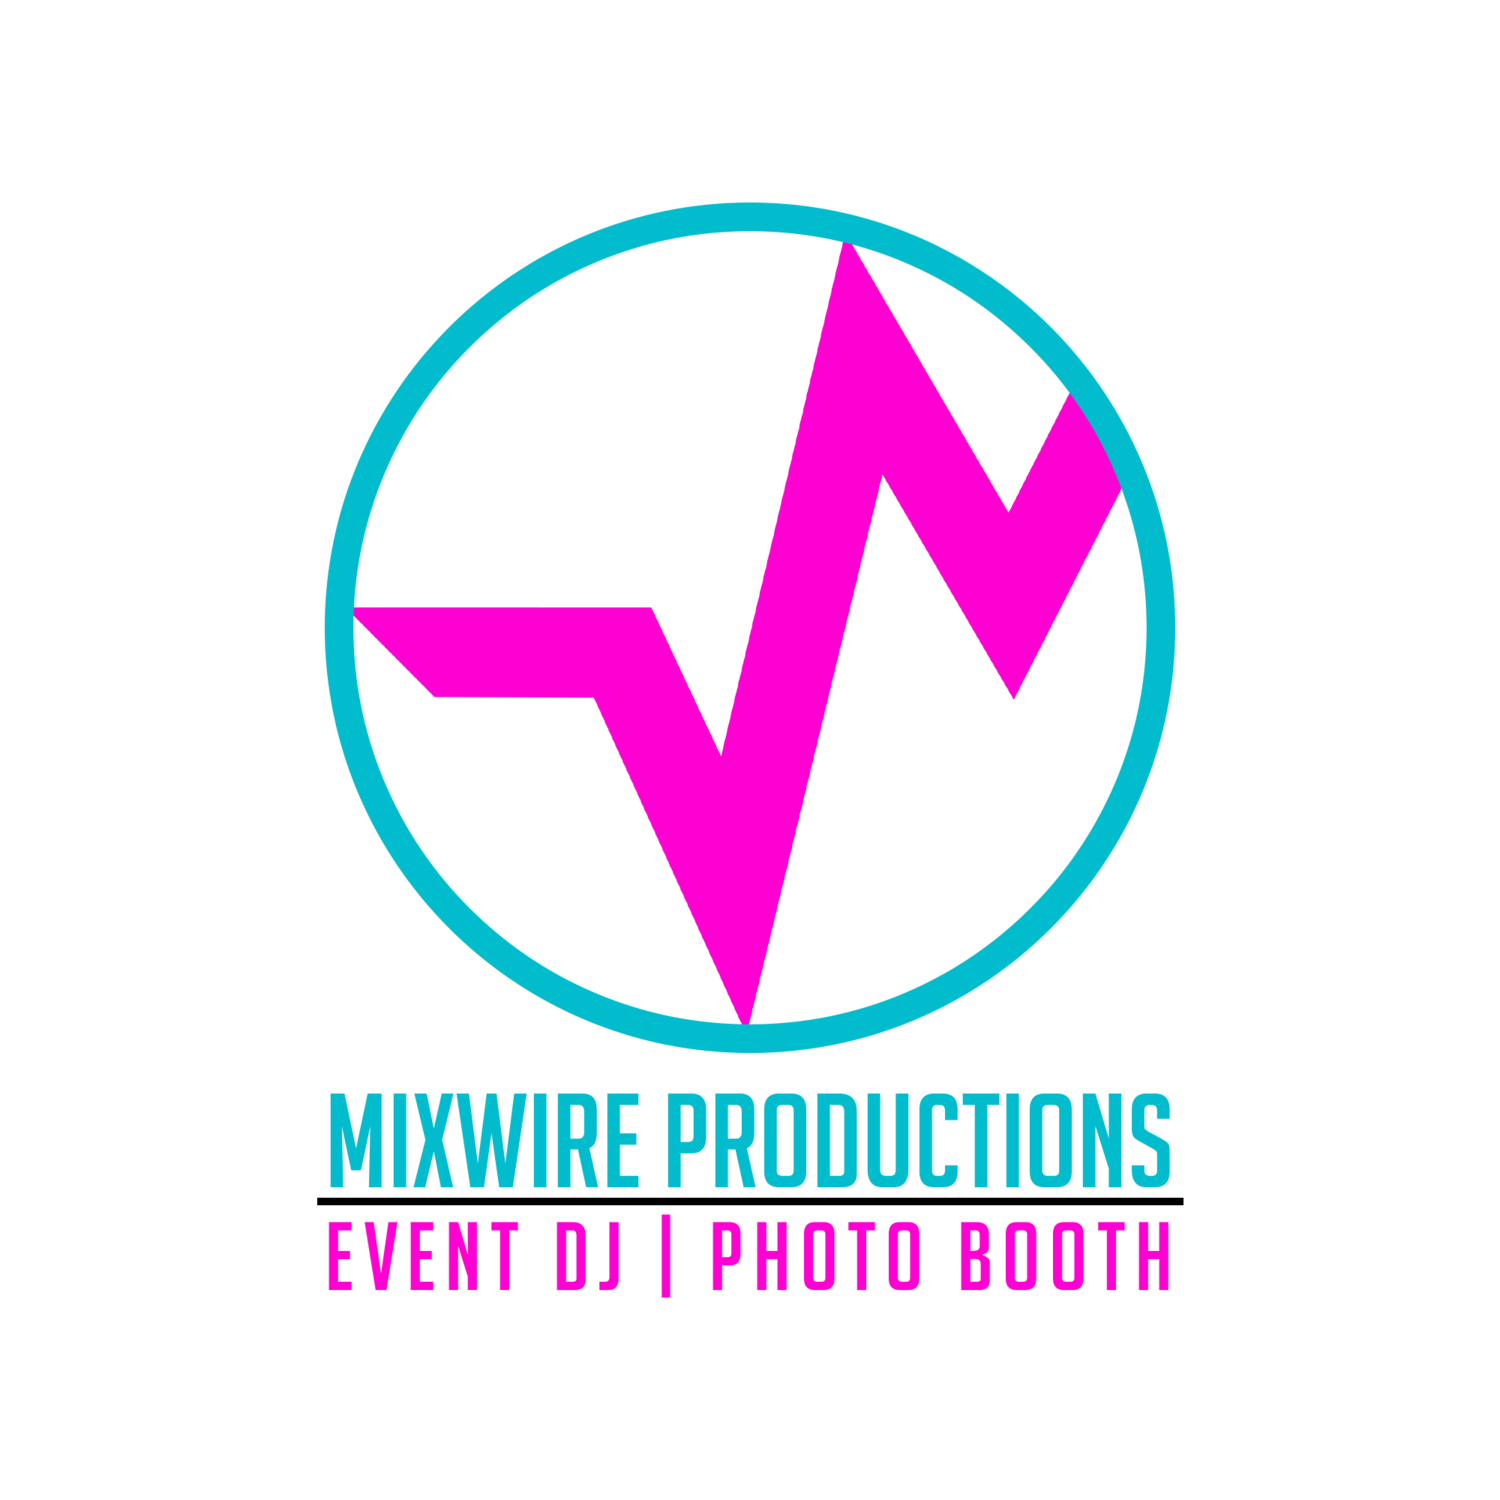 MixWire Productions